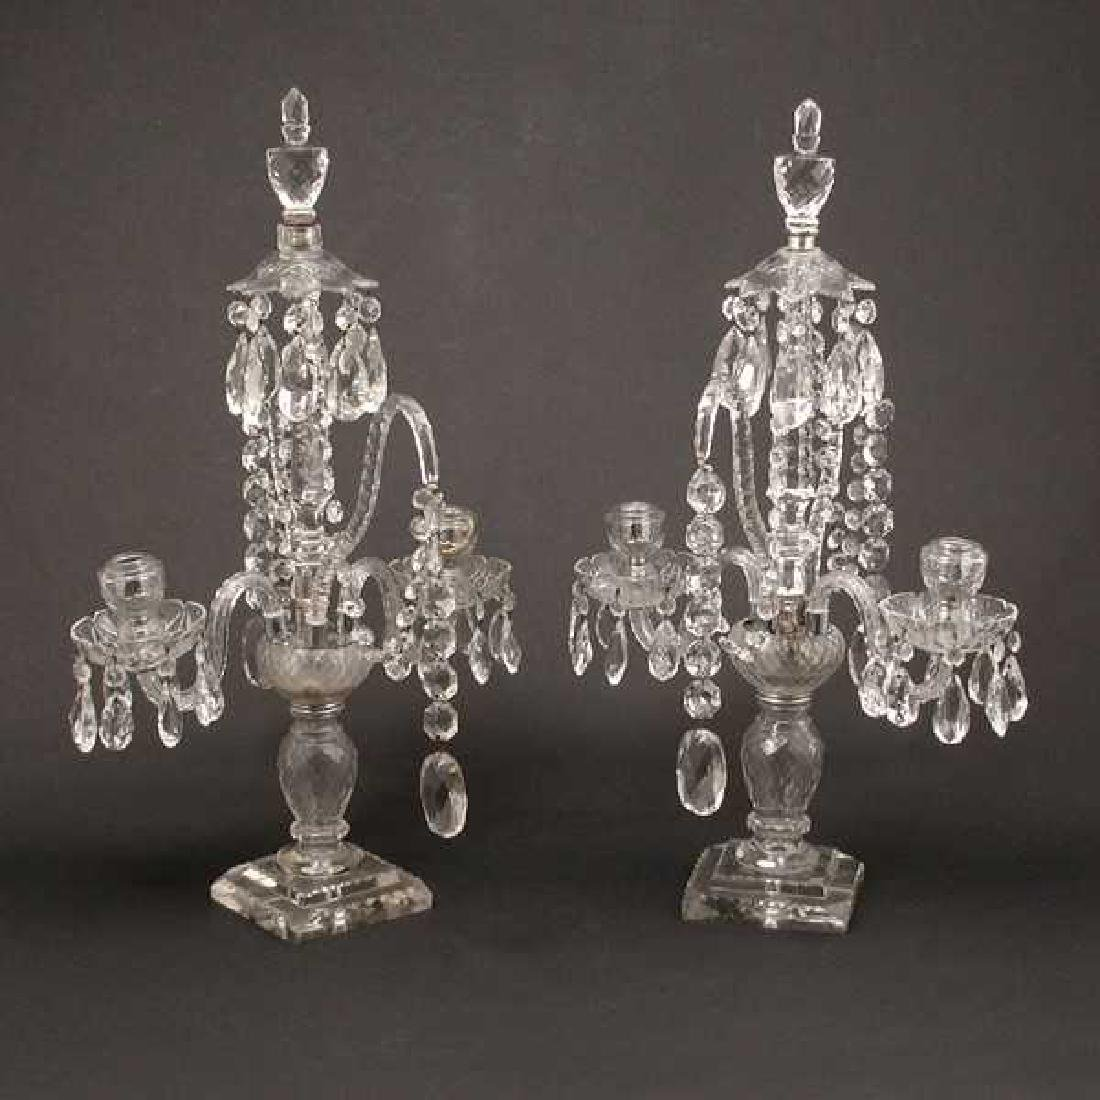 Pair of English George III Cut Glass Candelabra